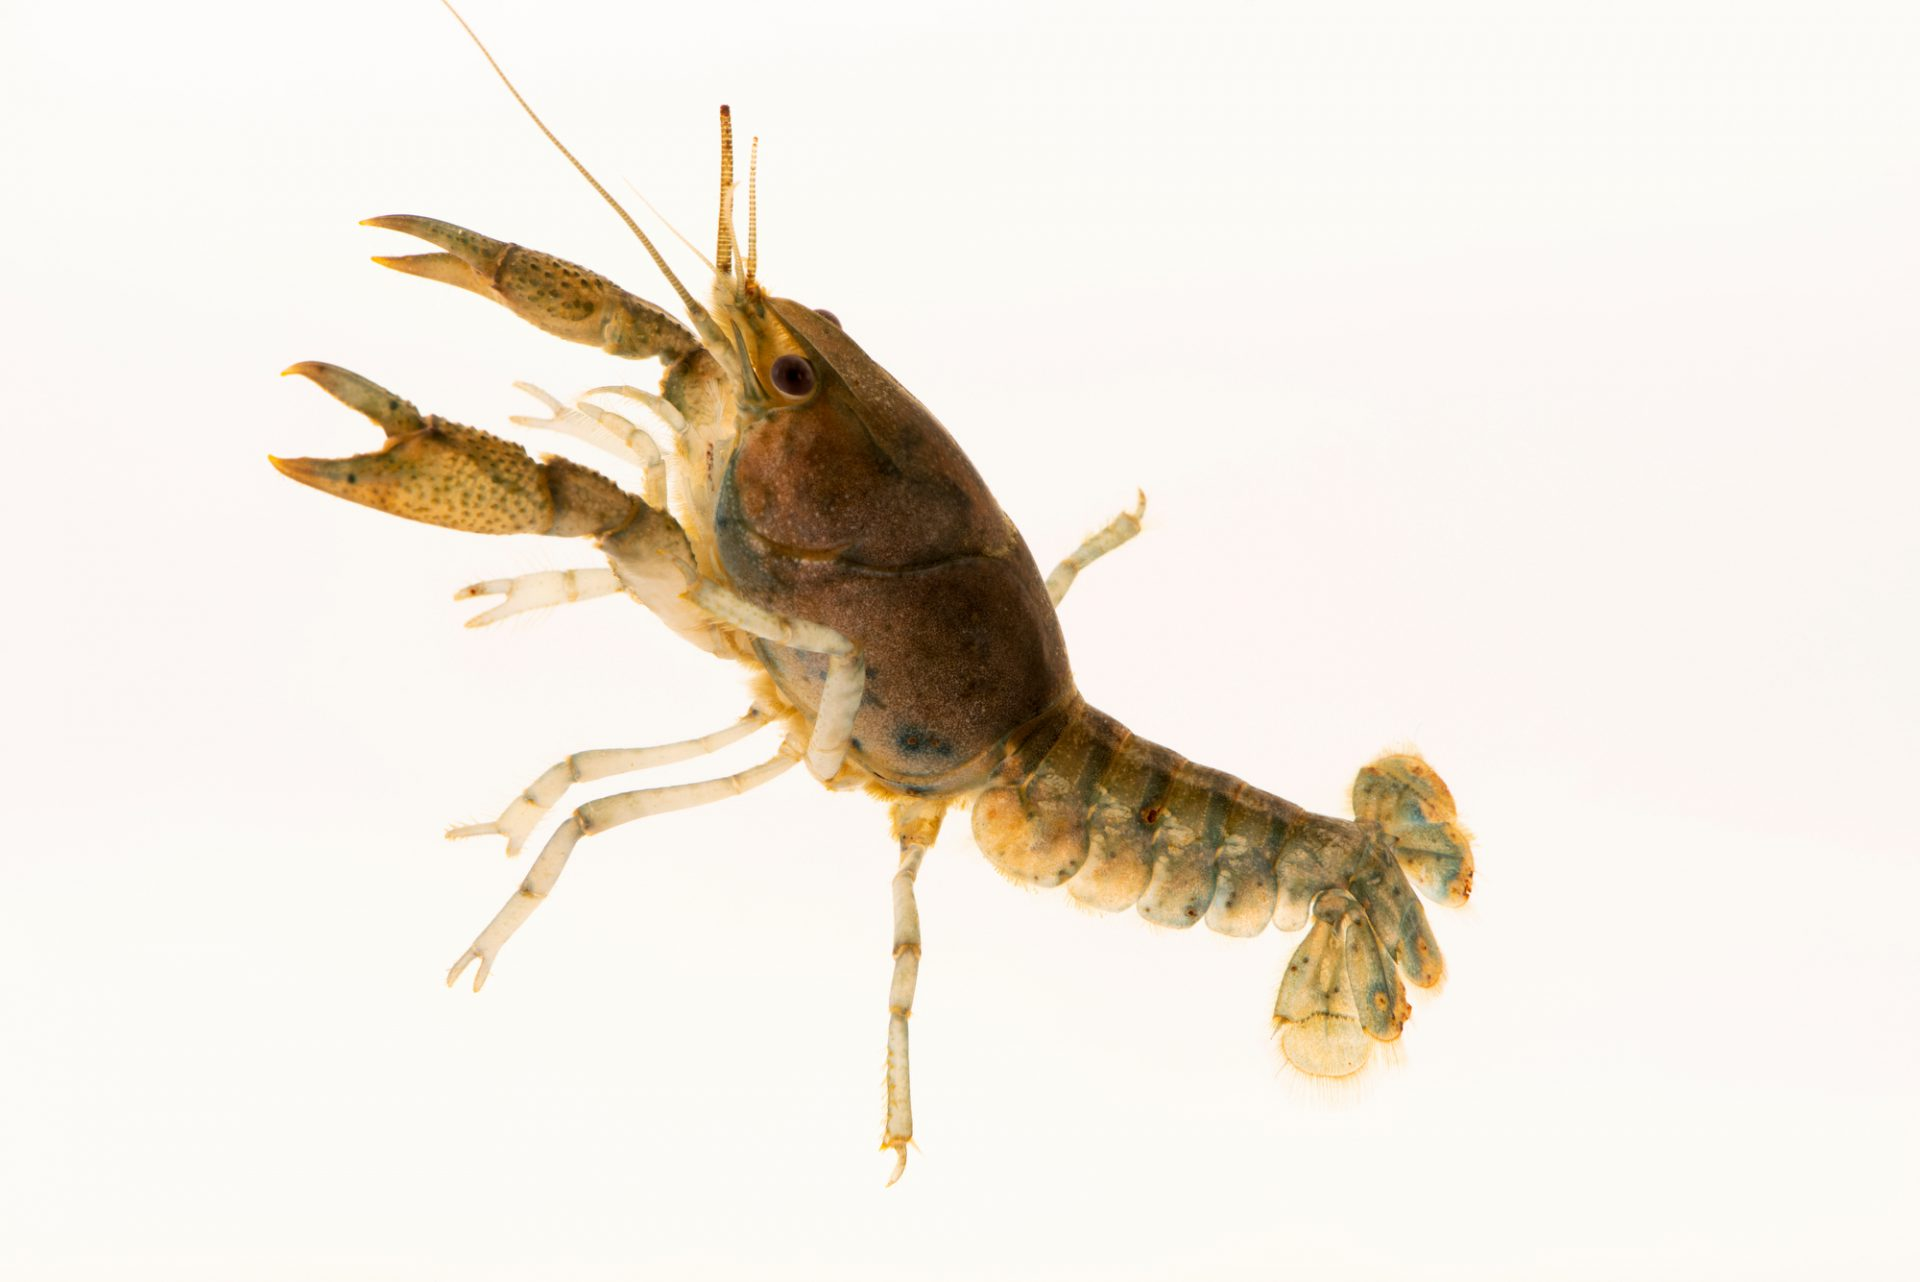 Photo: Brushpalm crayfish (Procambarus pubischelae) from the wild.